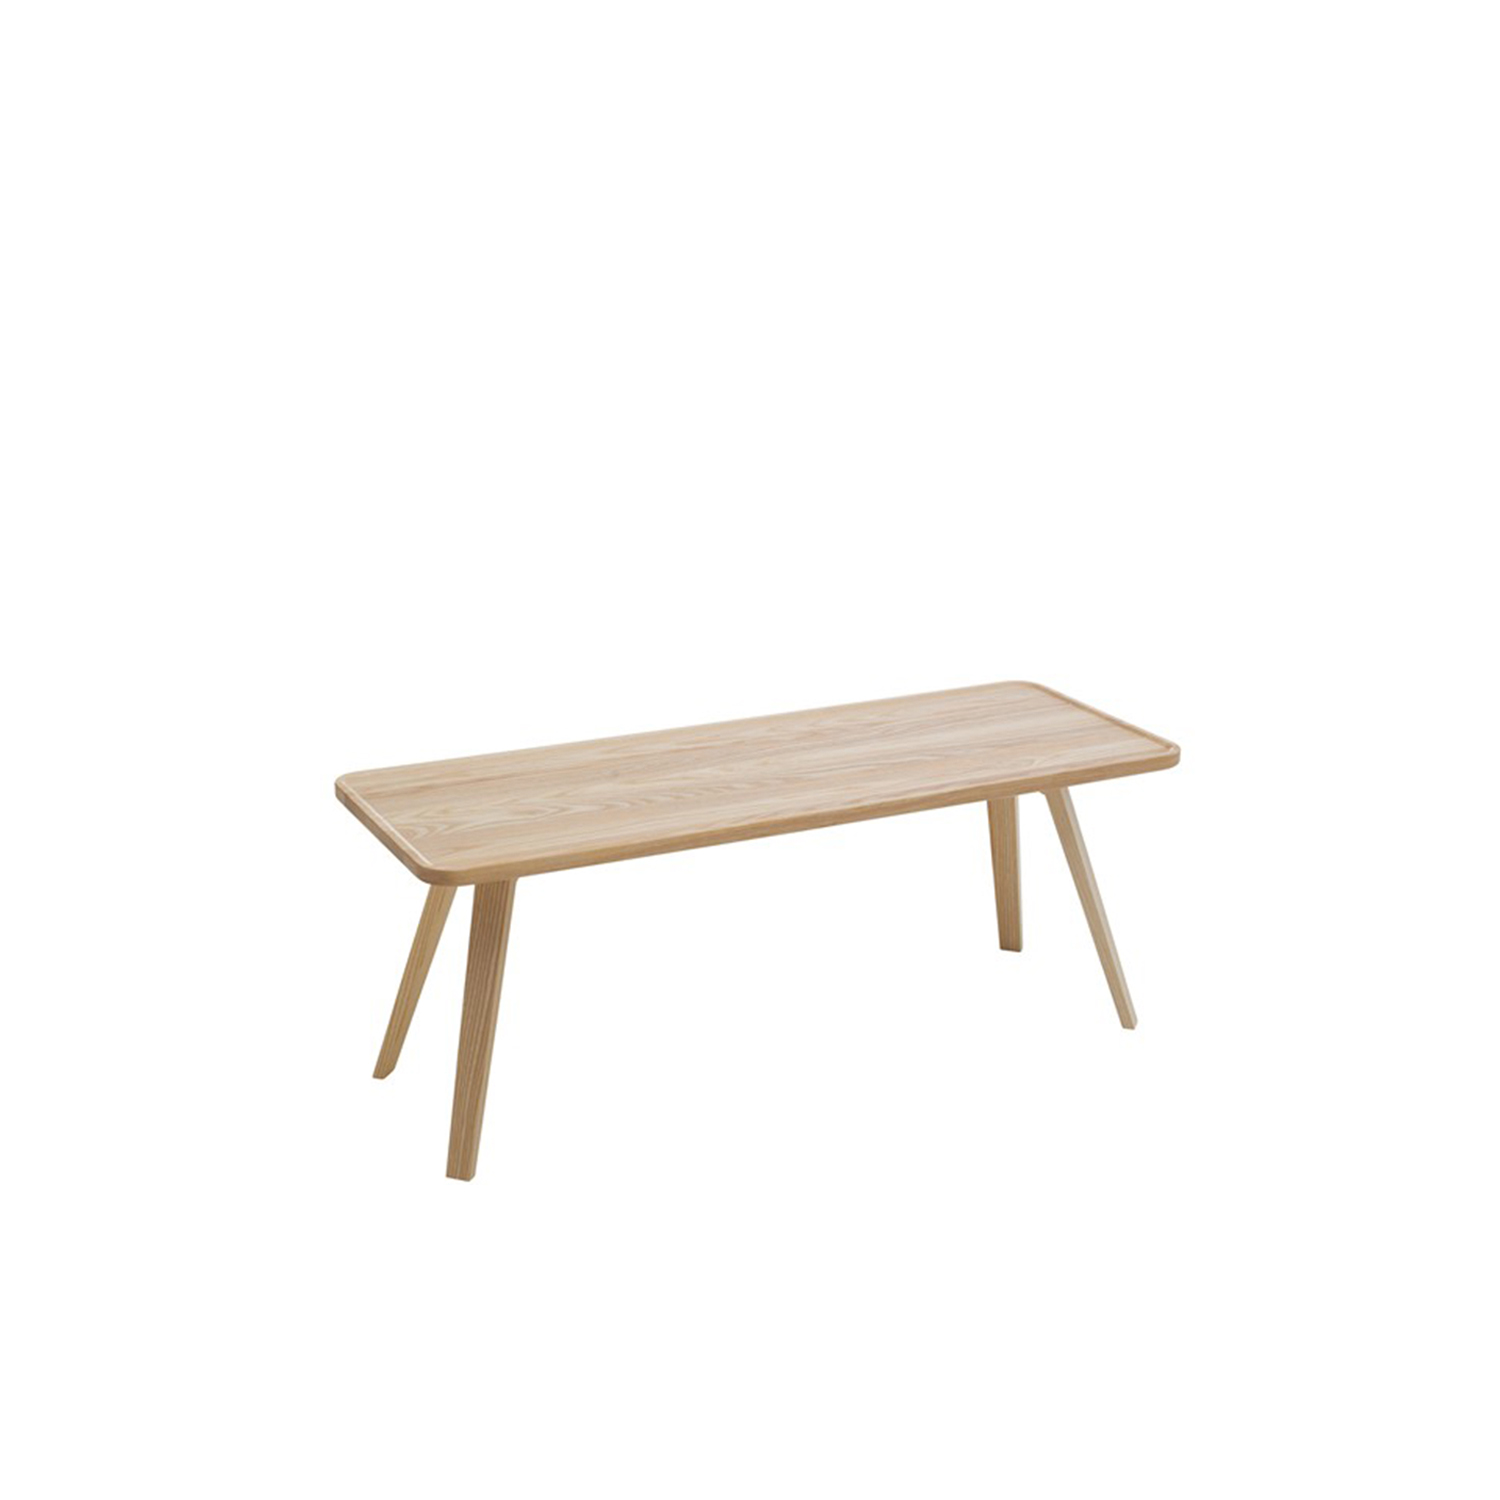 Mill Rectangular Coffee Table - Mill (2012) is a table with a solid wooden top and legs. The tabletop has been milled down to produce its distinctive appearance. Mill is available with a round, square or rectangular top in a number of different sizes and in heights of 460, 590 and 720 mm. The table is made of solid wood, so it can be sanded down and relacquered a number of times, making it suitable for use in settings where it is subjected to a lot of wear and tear.  Mill comes in a choice of oak, birch, ash, standard stains on ash and white glazed oak or ash. The table is also available in standard colors with tabletop made in MDF. Special sizes and other finishes upon request. You can use Mill to furnish cafés, kitchens and living rooms, or in hotels, schools, waiting areas etc.  Additional heights and dimensions are available, please see technical sheet attached and enquire for more details. | Matter of Stuff